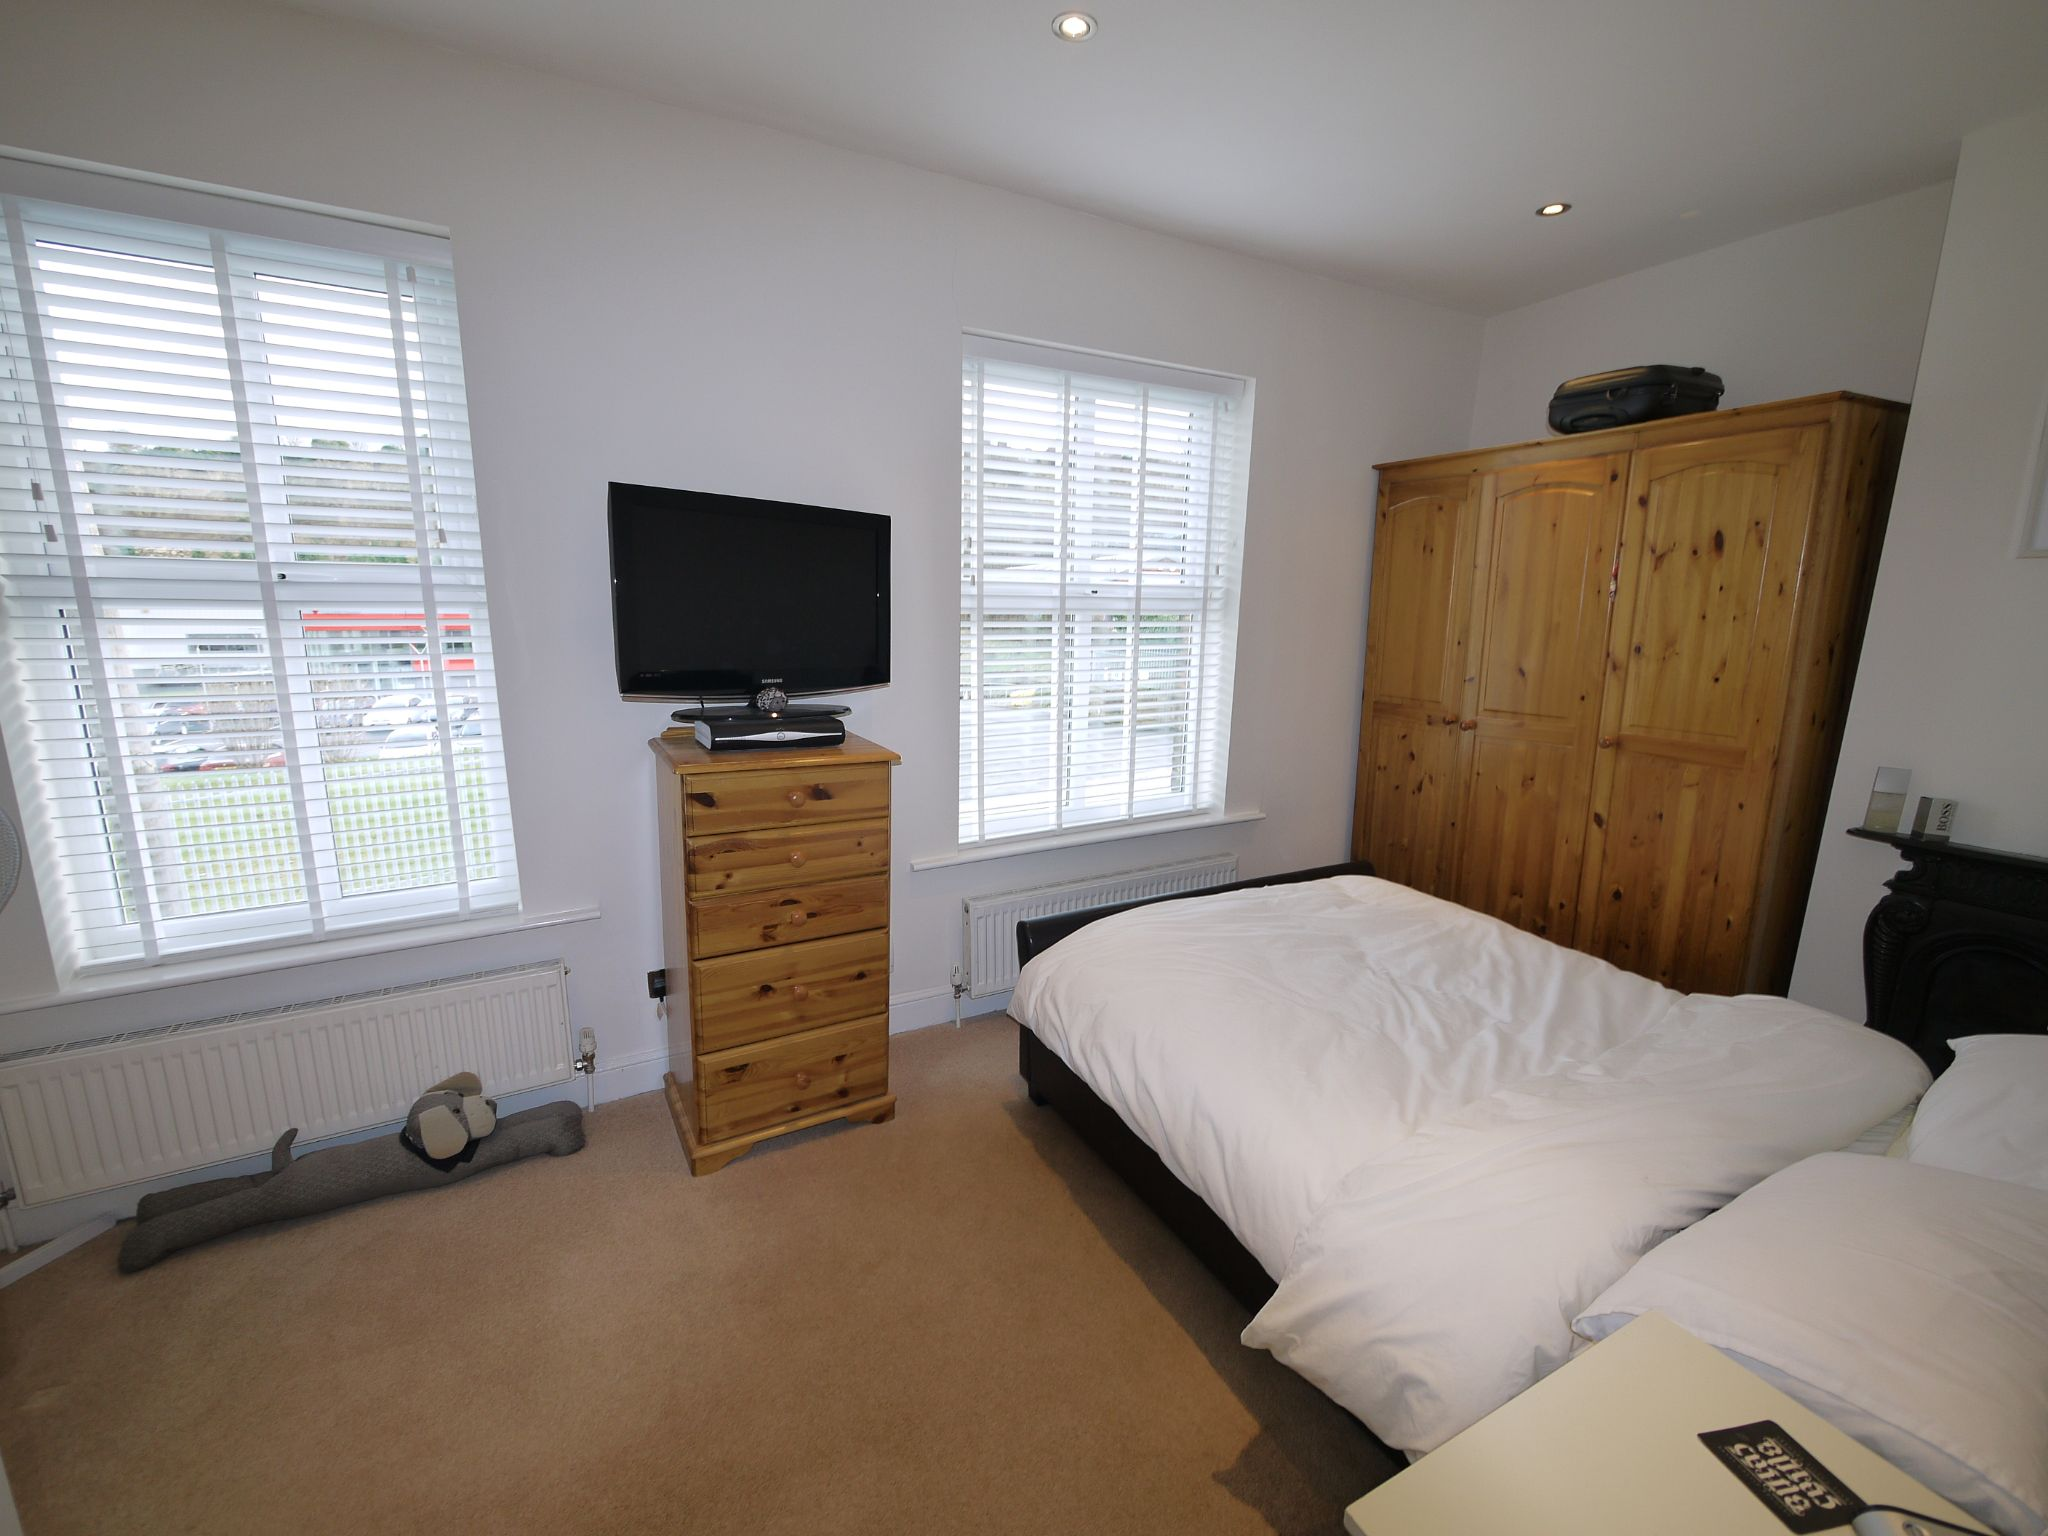 1 bedroom detached house For Sale in Brighouse - Photograph 4.